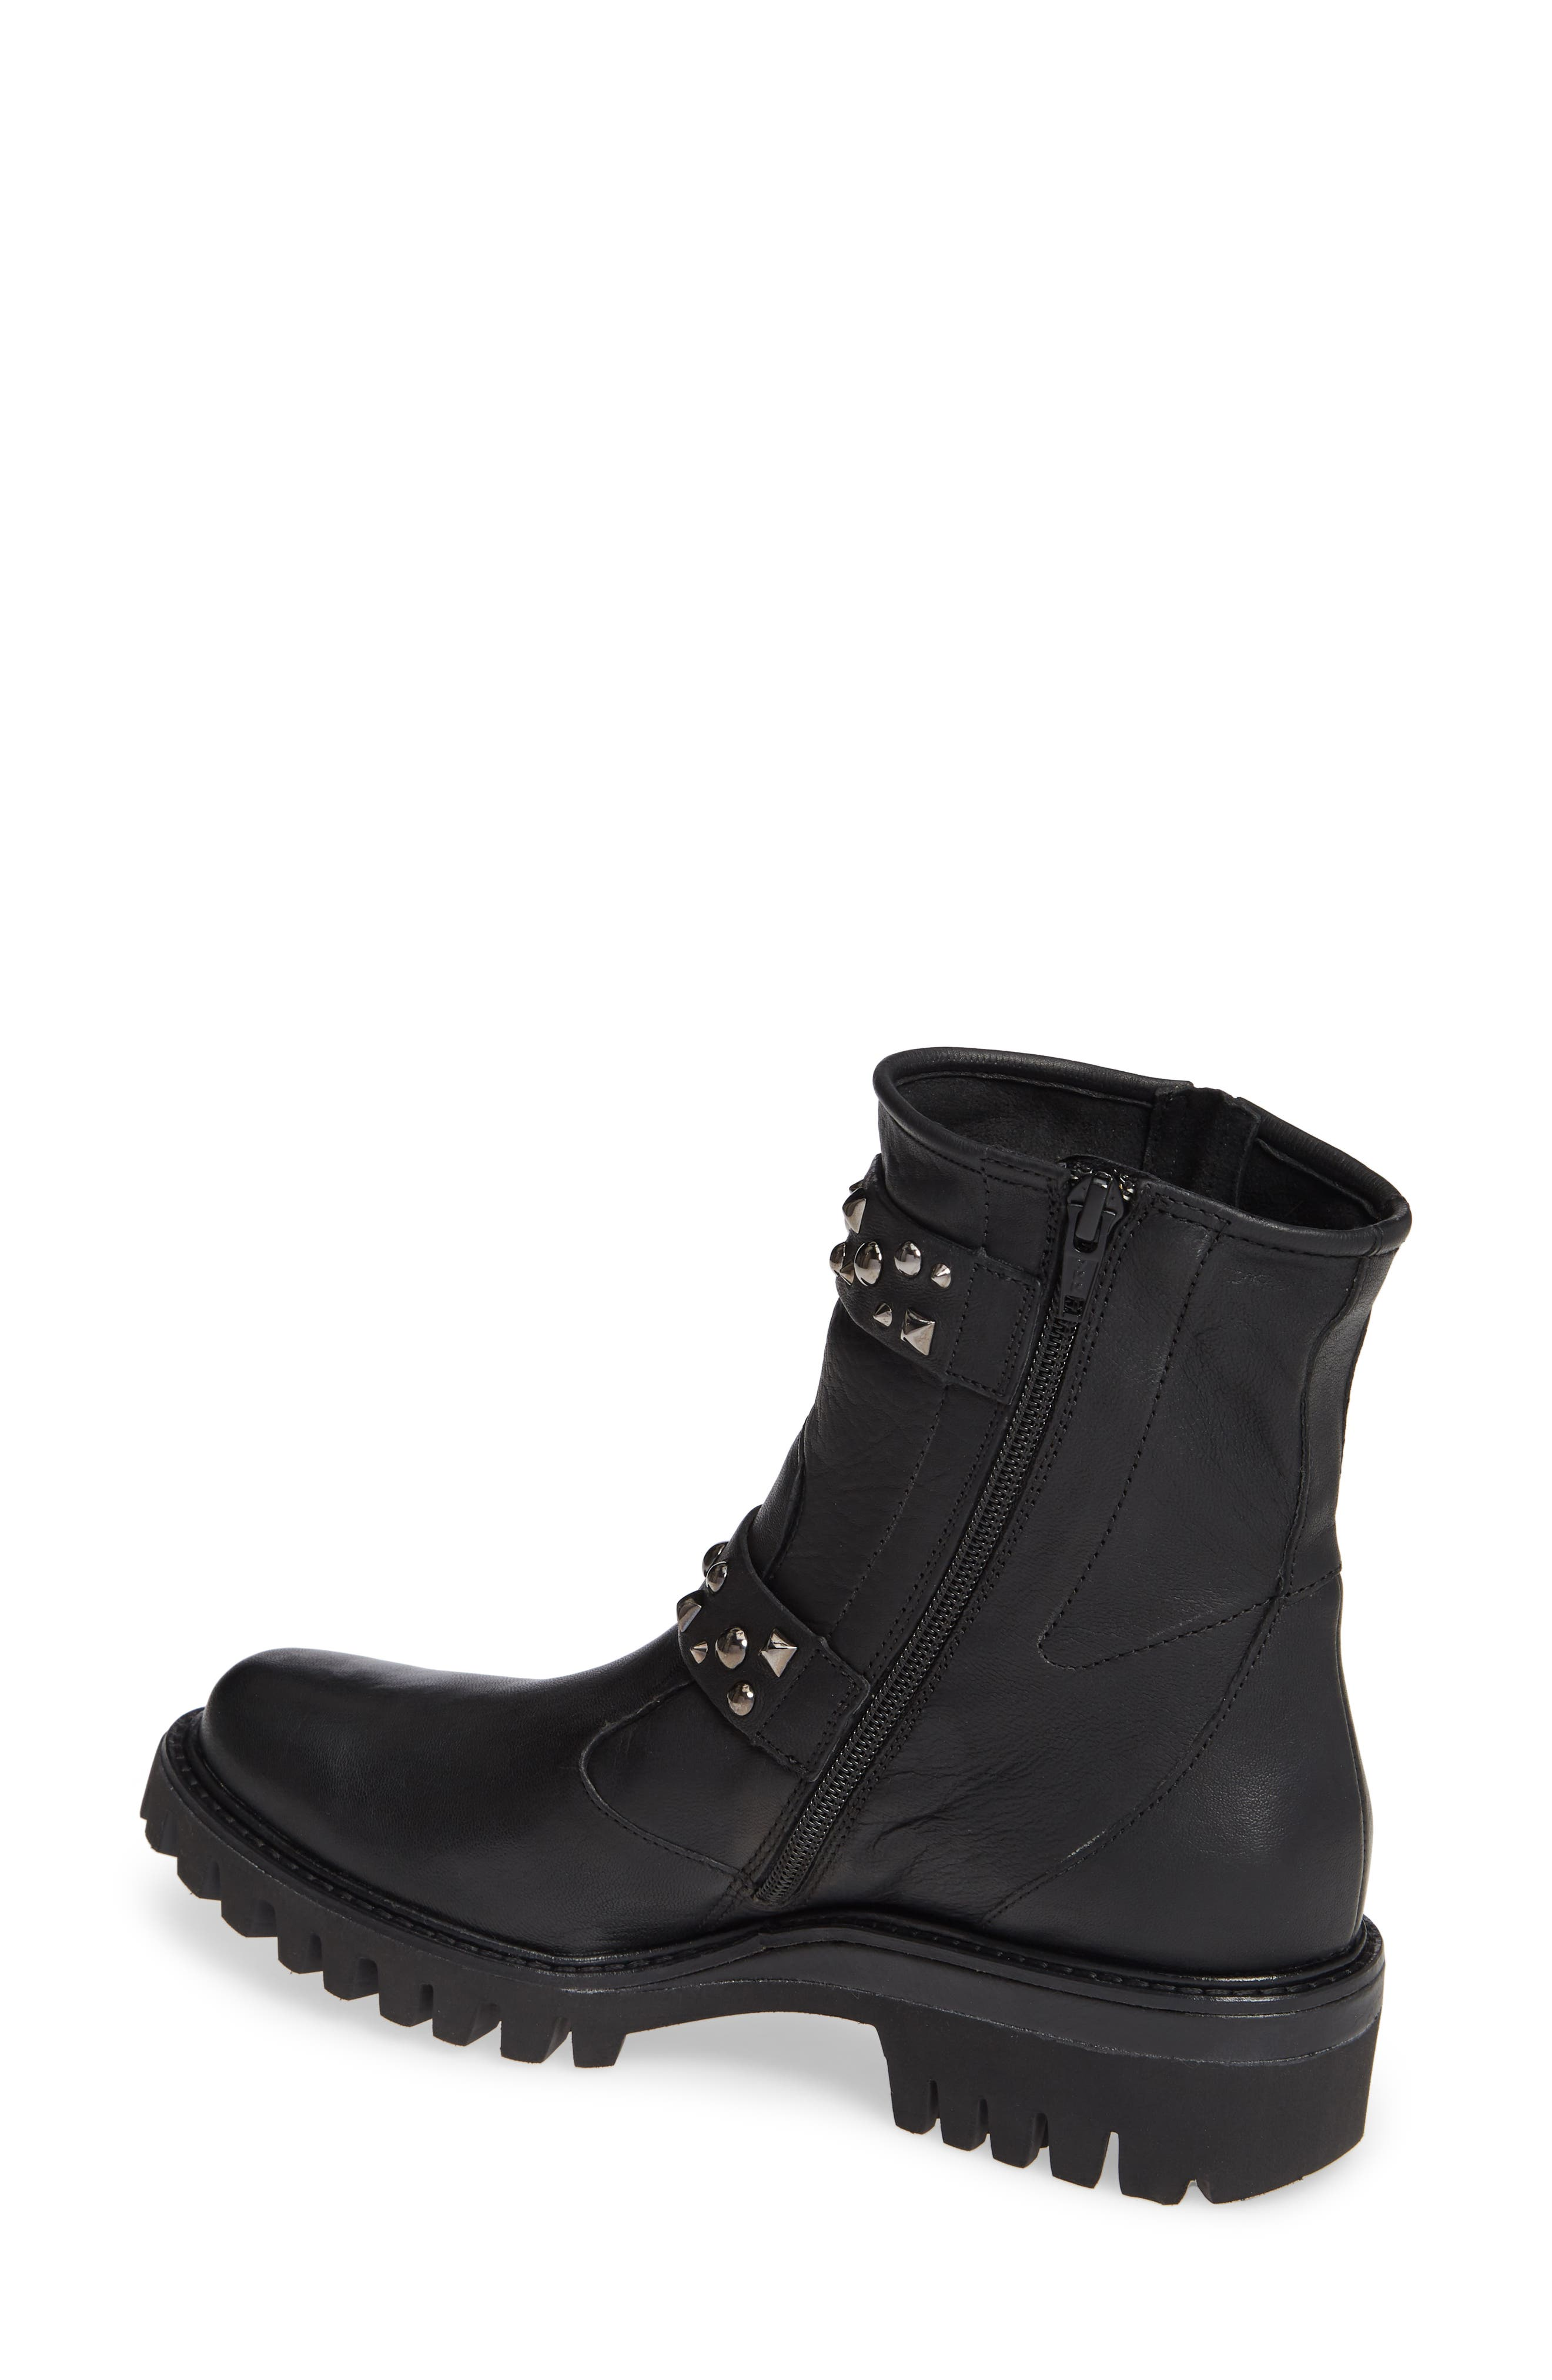 Veronia Studded Buckle Boot,                             Alternate thumbnail 2, color,                             BLACK LEATHER